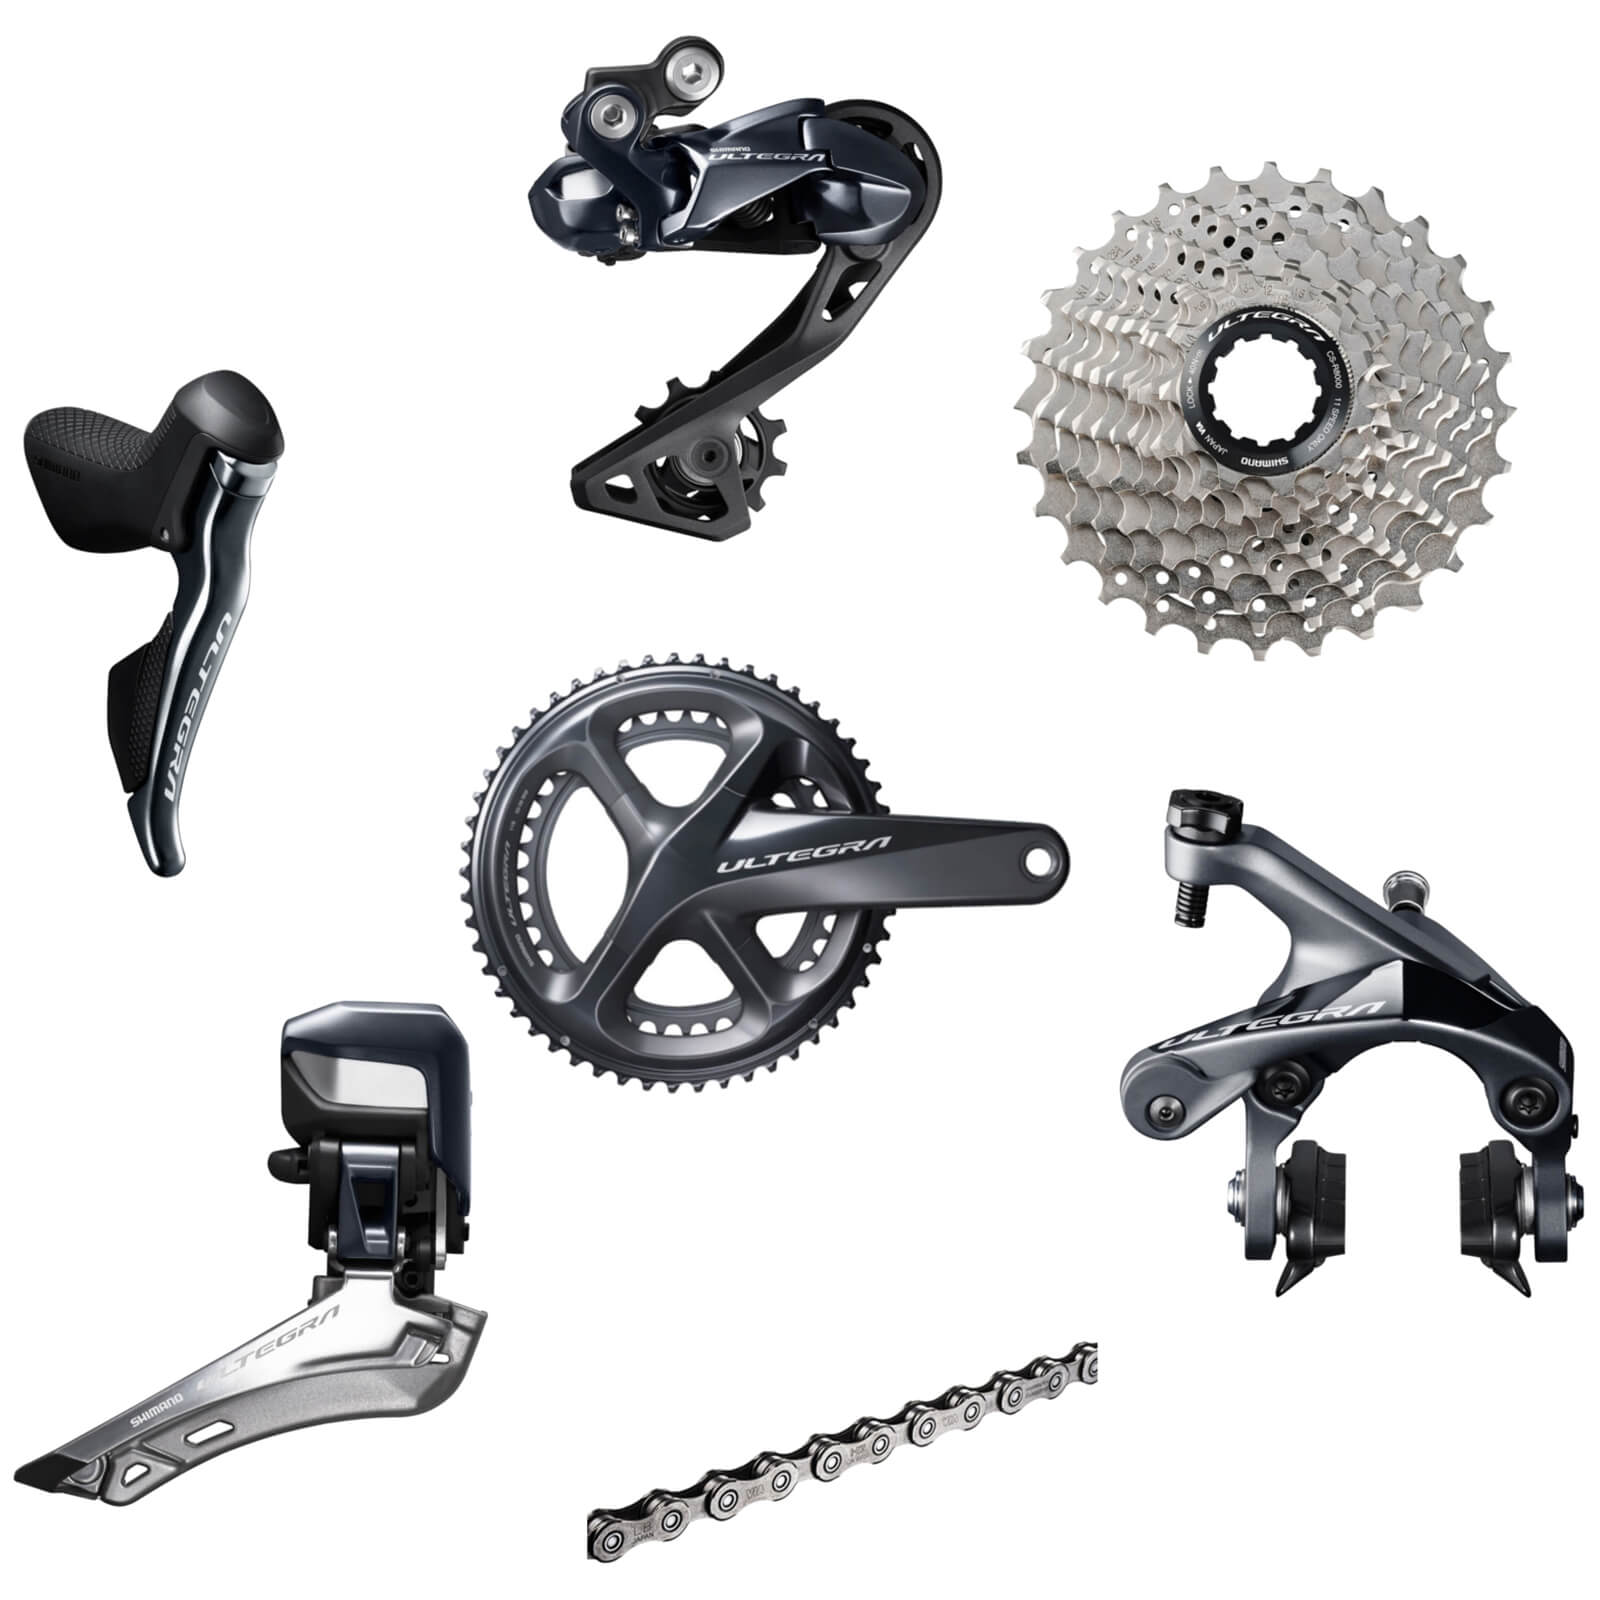 SHIMANO Ultegra Di2 ST Speed Shifters. by SHIMANO. $ - $ $ $ FREE Shipping on eligible orders. 5 out of 5 stars 2. Product Features Compatible Components: Ultegra Di2 , E-tube Di2 technology. SHIMANO Ultegra Di2 FD-R Front Derailleur.